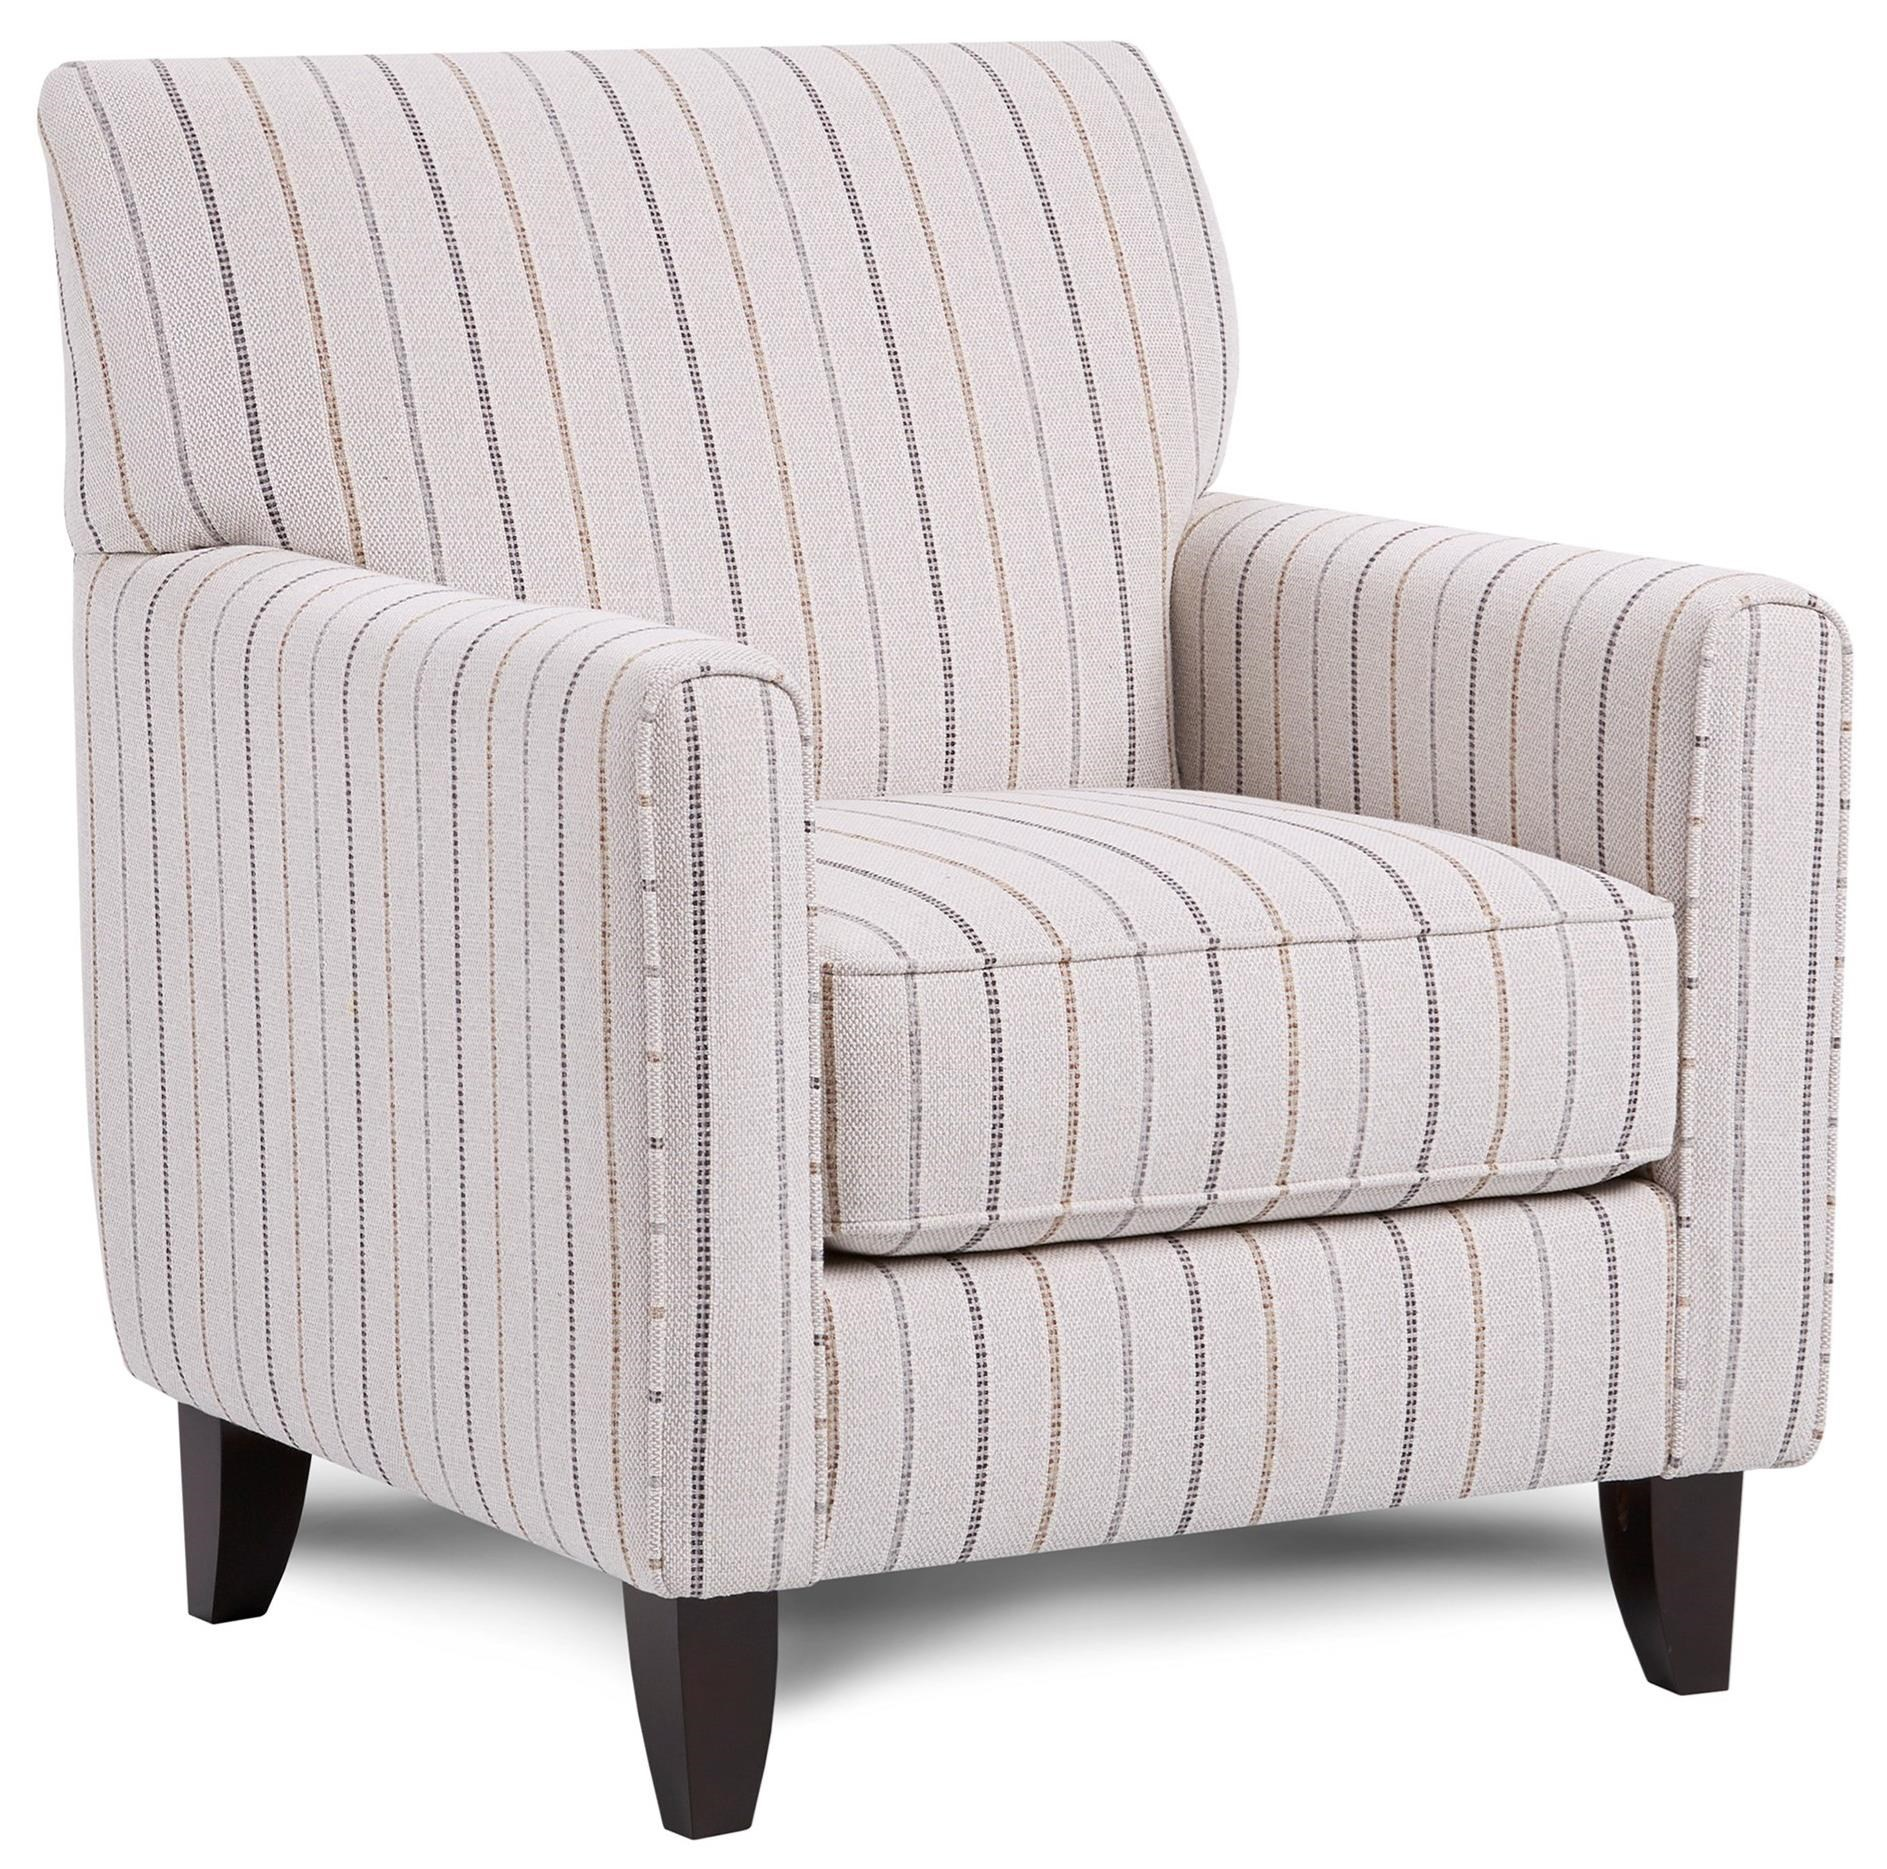 702 Accent Chair by Fusion Furniture at Furniture Superstore - Rochester, MN